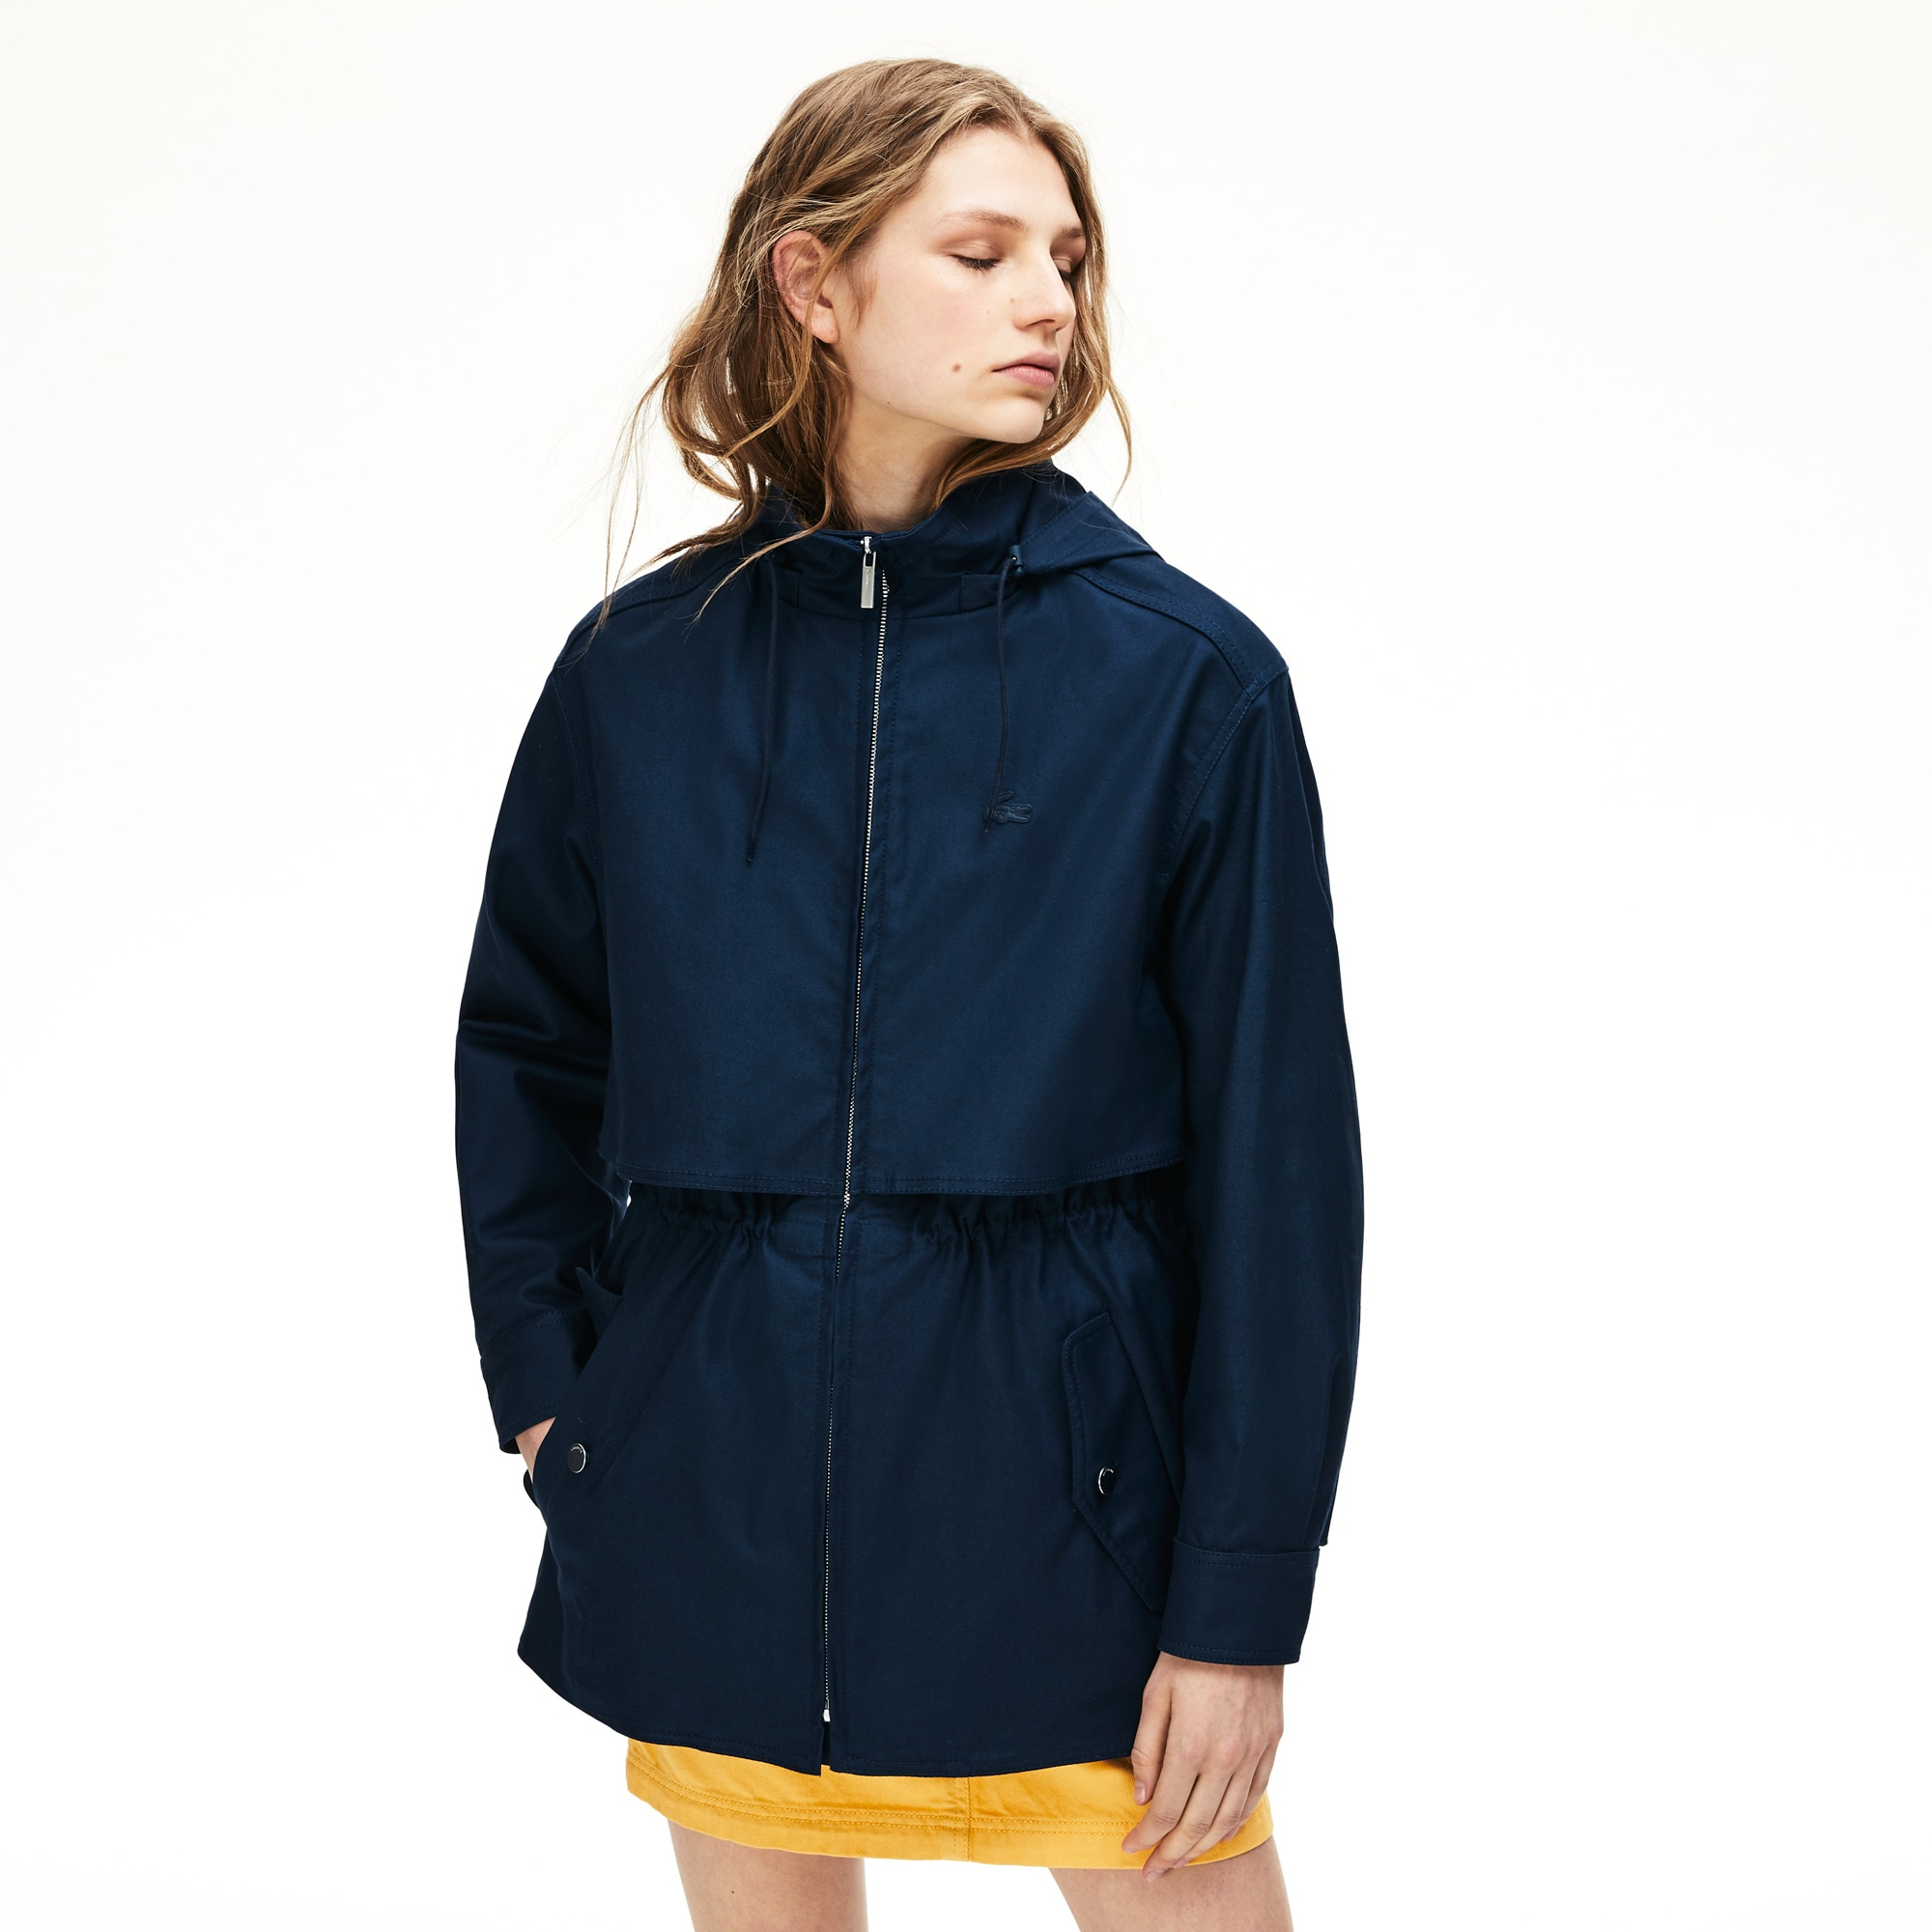 128c333a4221 Jackets & Coats | Women's Fashion | LACOSTE